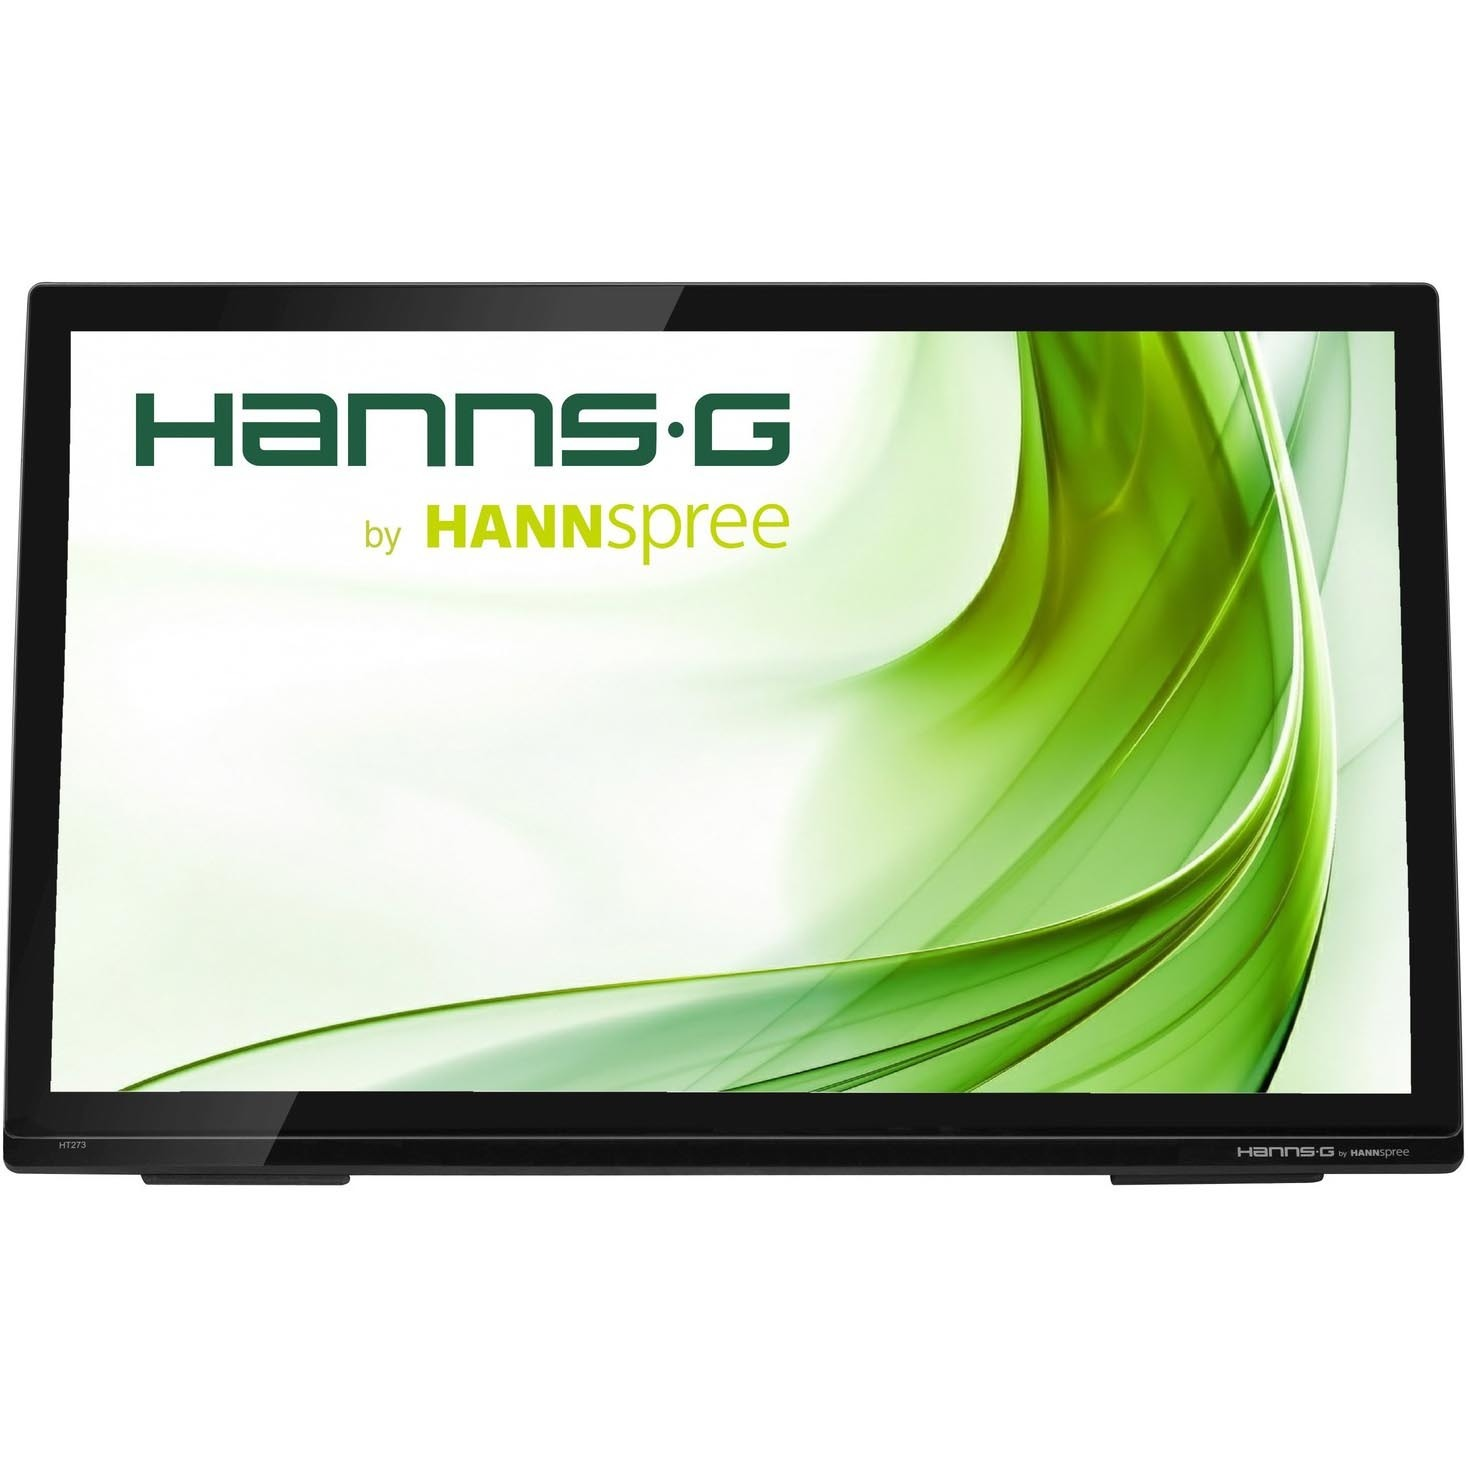 Hanns.G HT273HPB  27inch LCD Touchscreen Monitor - 16:9 - 8 ms